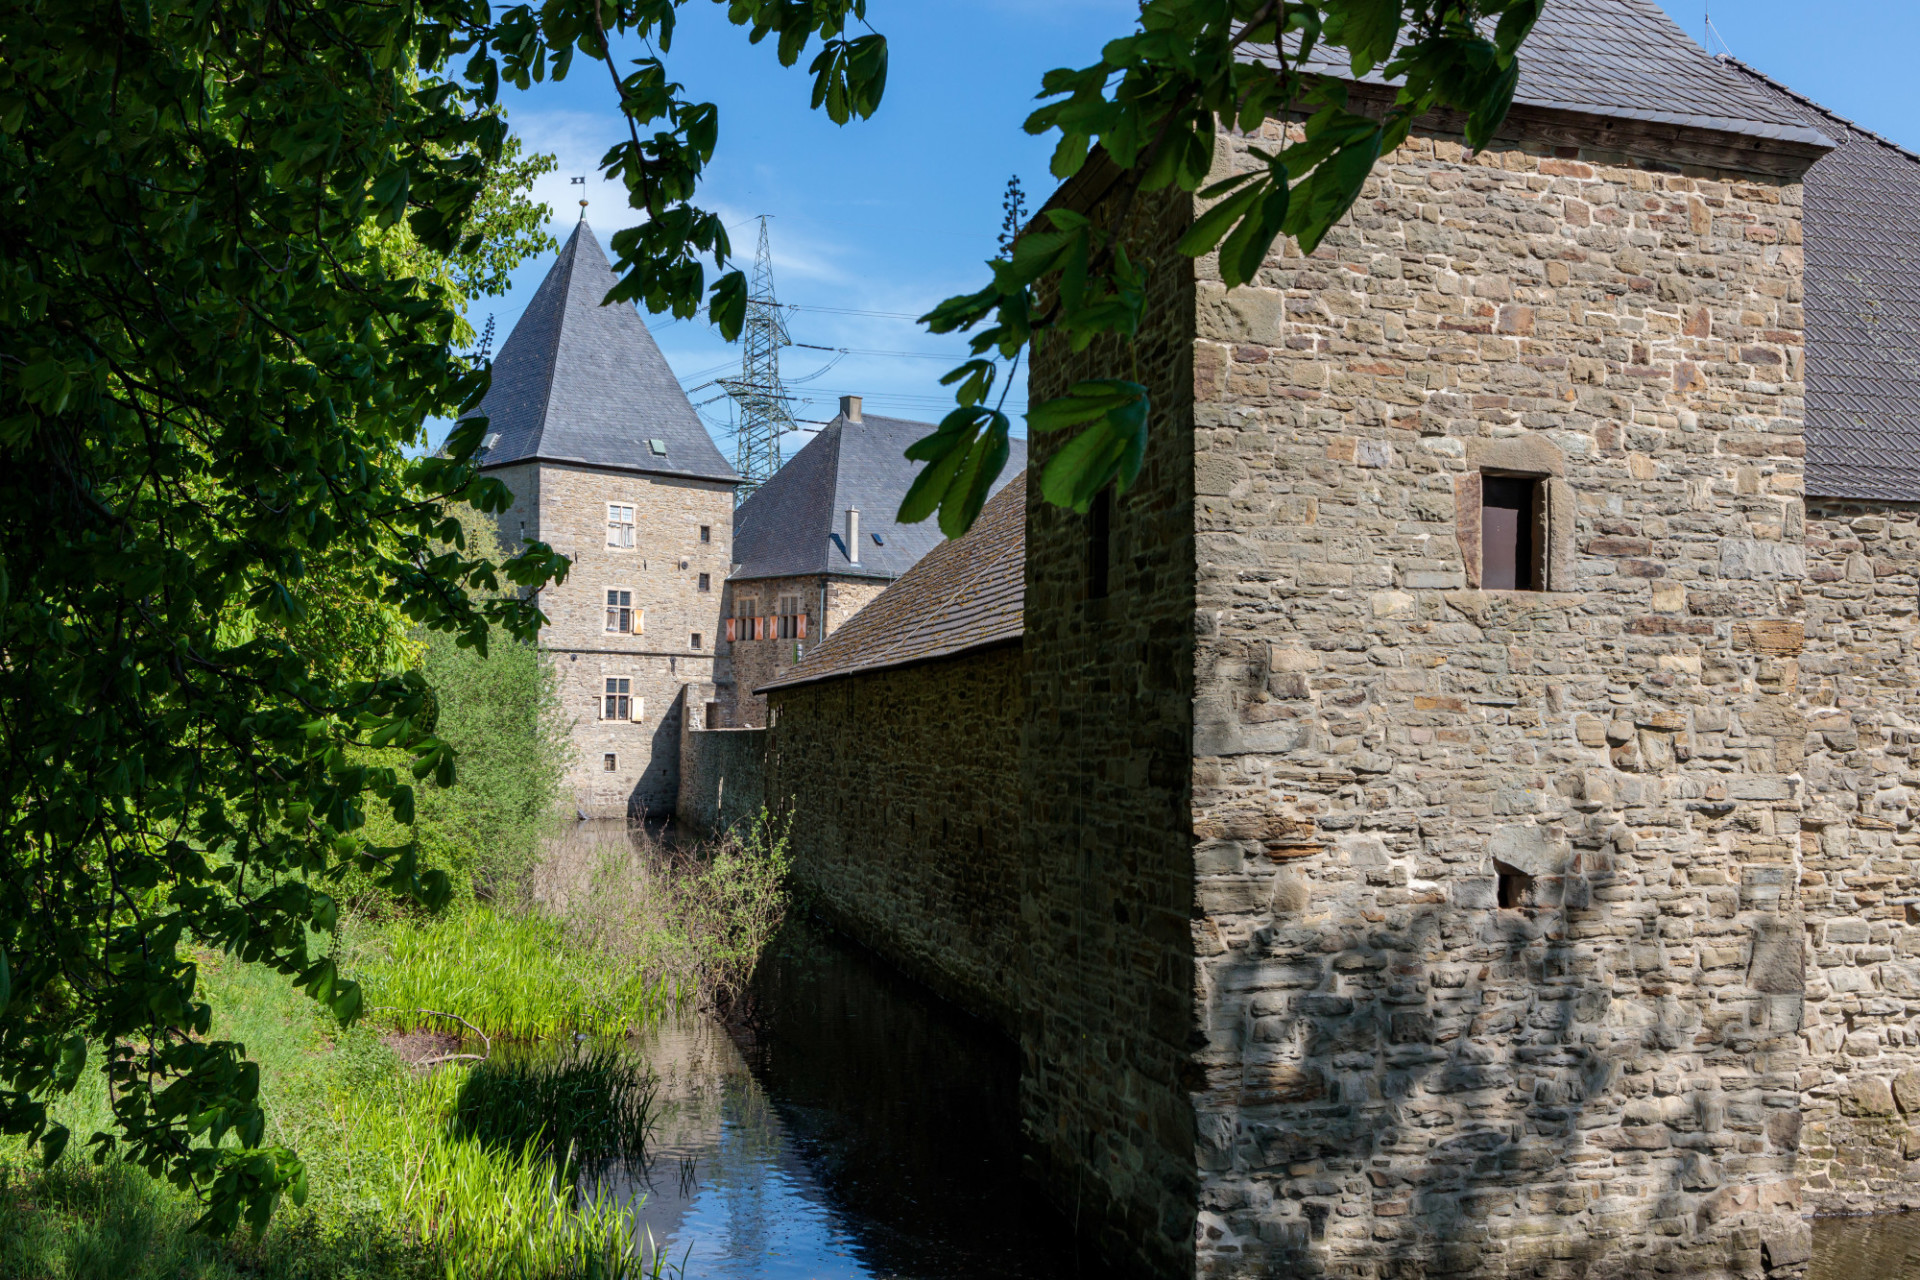 Castle with moat in Germany - Haus Kemnade